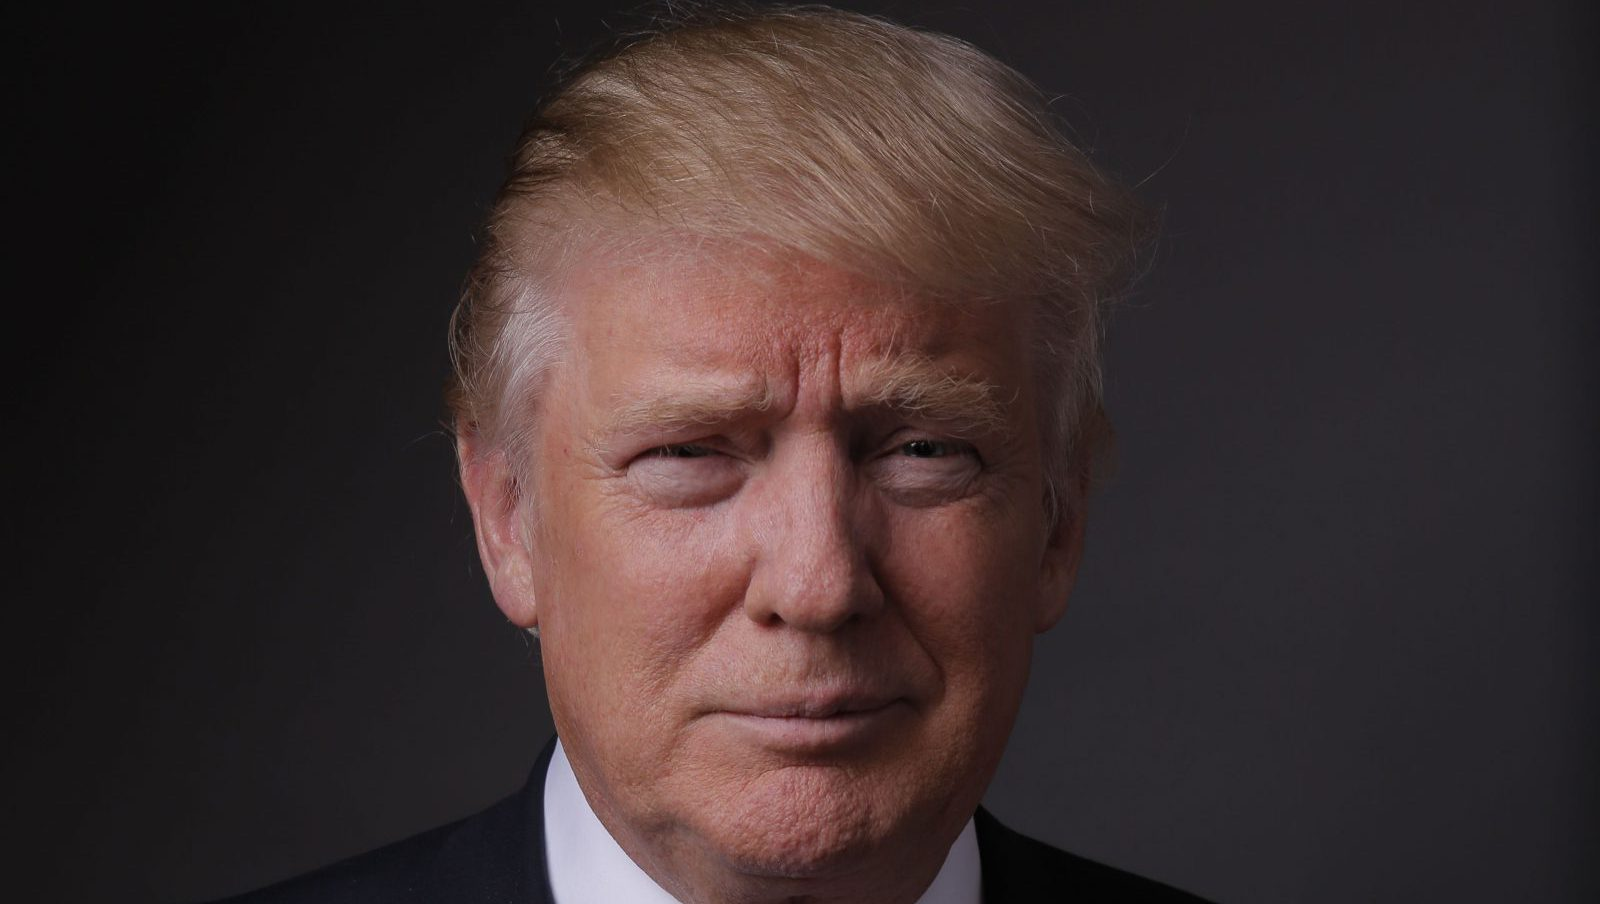 Republican U.S. presidential candidate Donald Trump poses for a photo after an interview with Reuters in his office in Trump Tower, in the Manhattan borough of New York City, May 17, 2016.  - RTSEQ8H